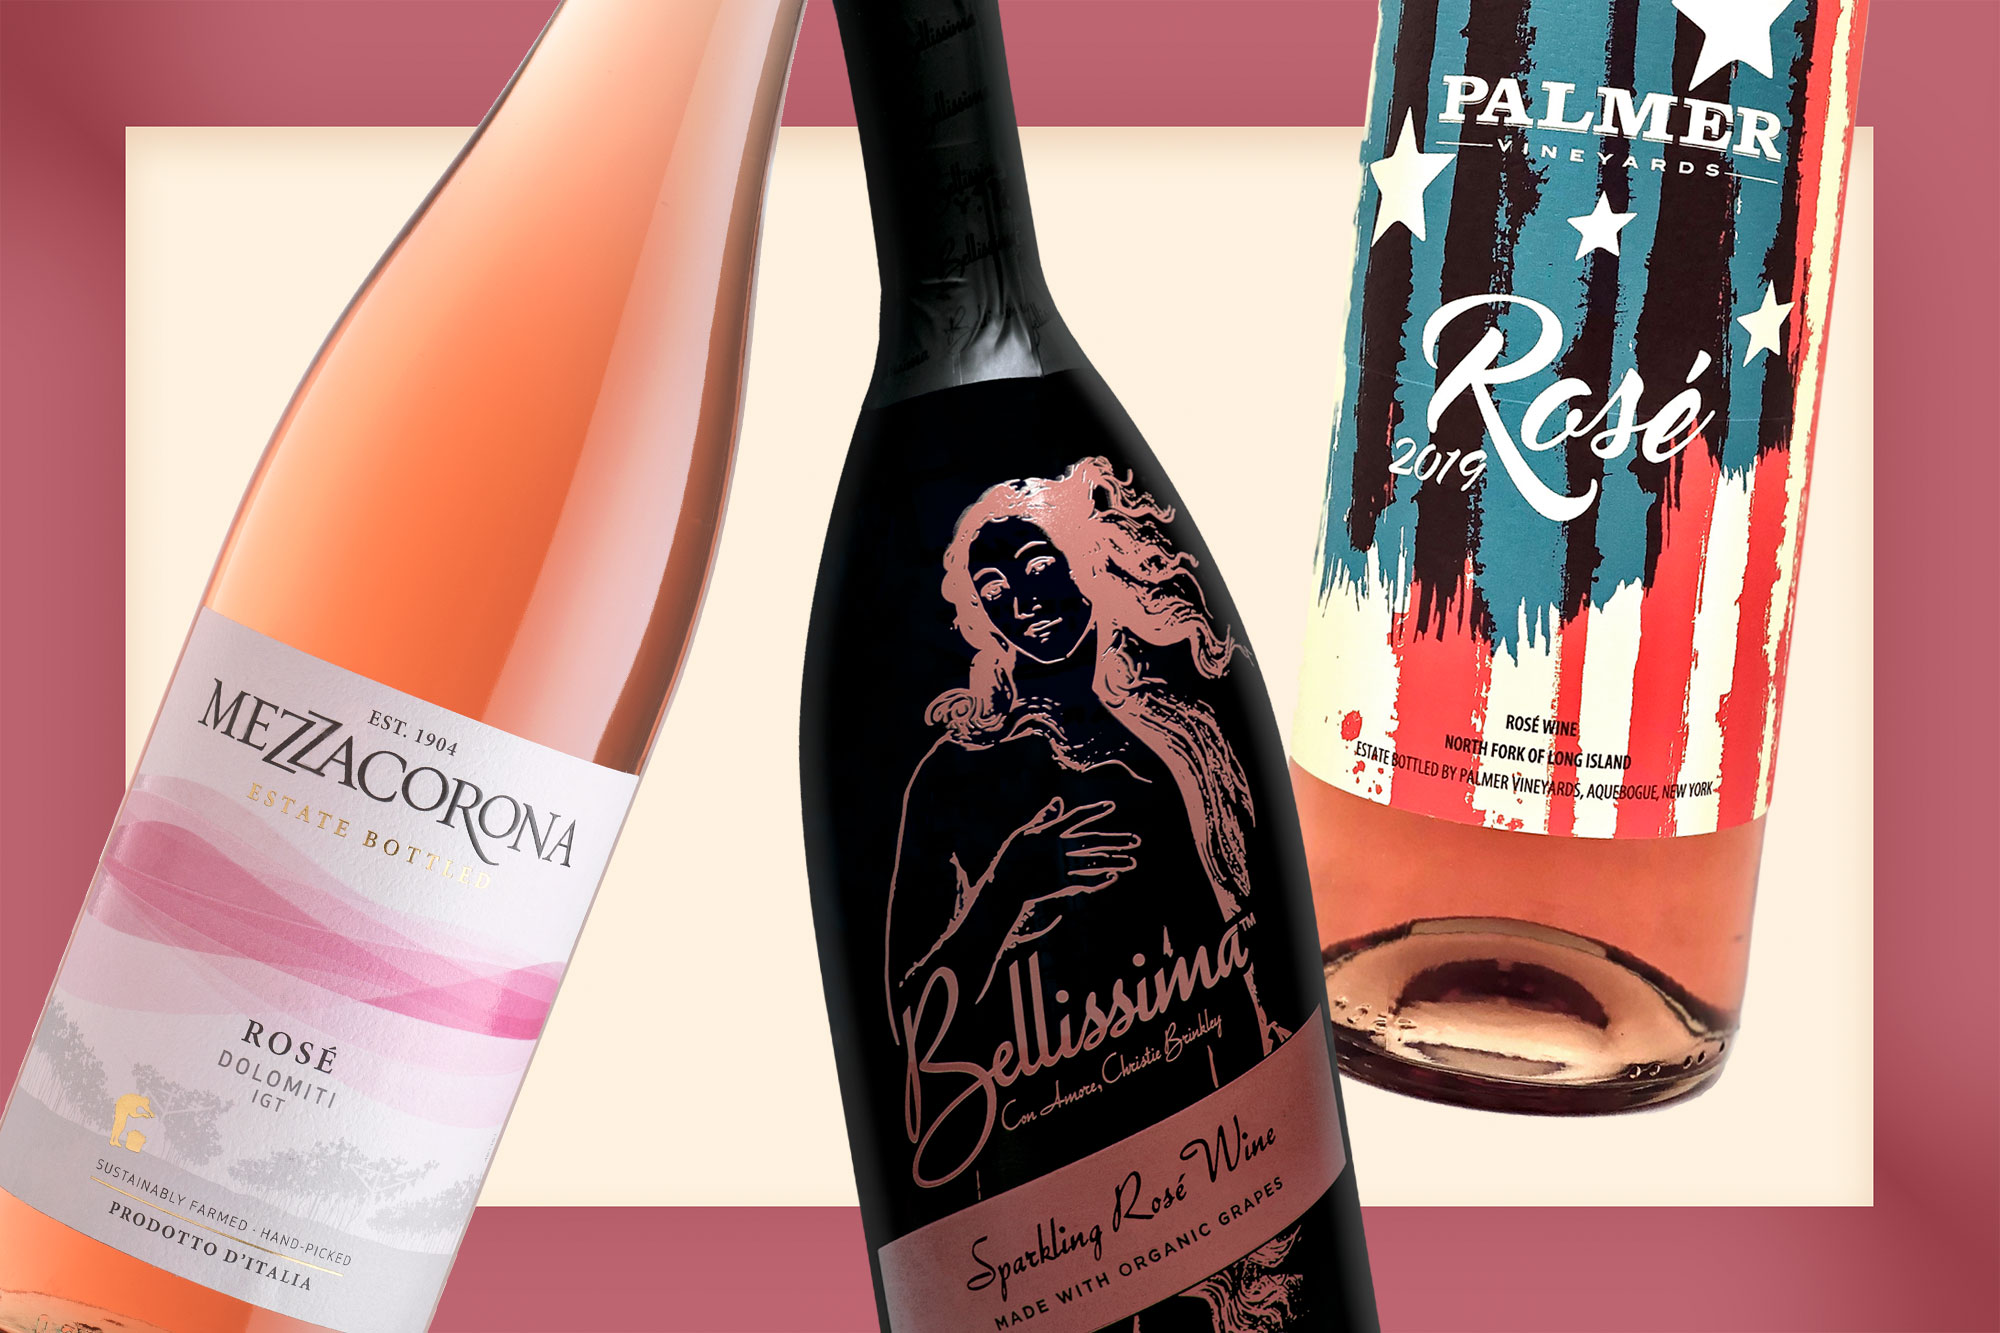 Bottles of Mezzacrona, Bellissima, and Palmer Rosé Wines